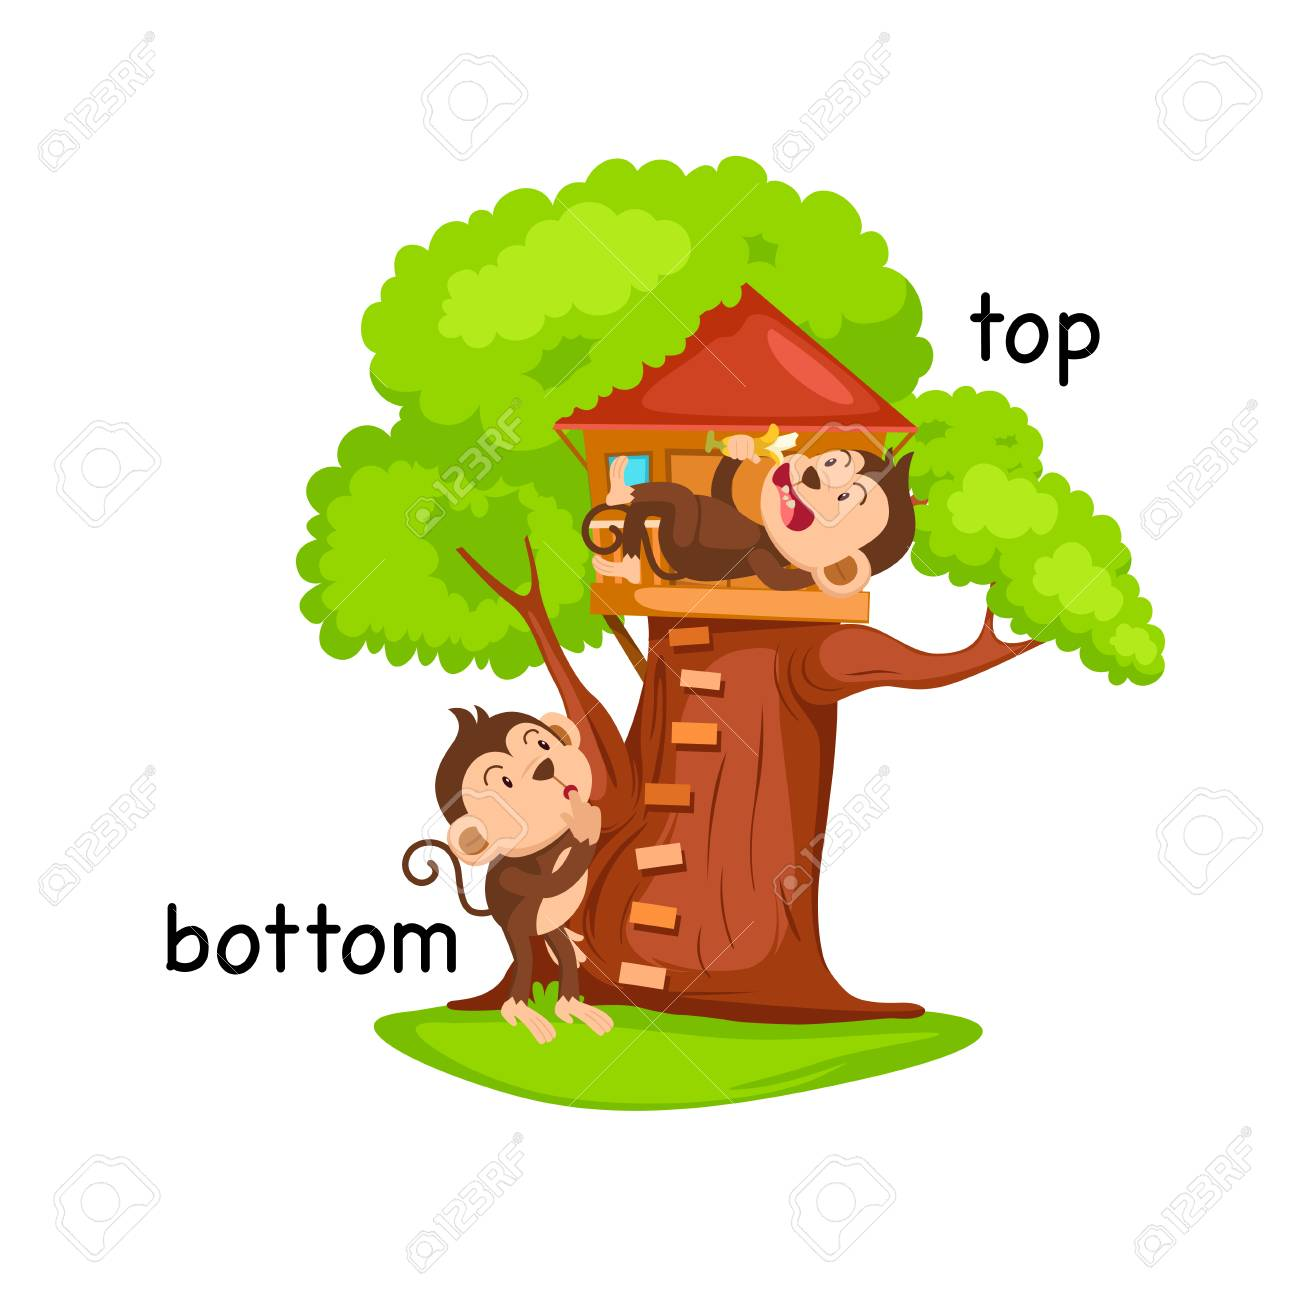 hight resolution of opposite words bottom and top vector illustration stock vector 77682220